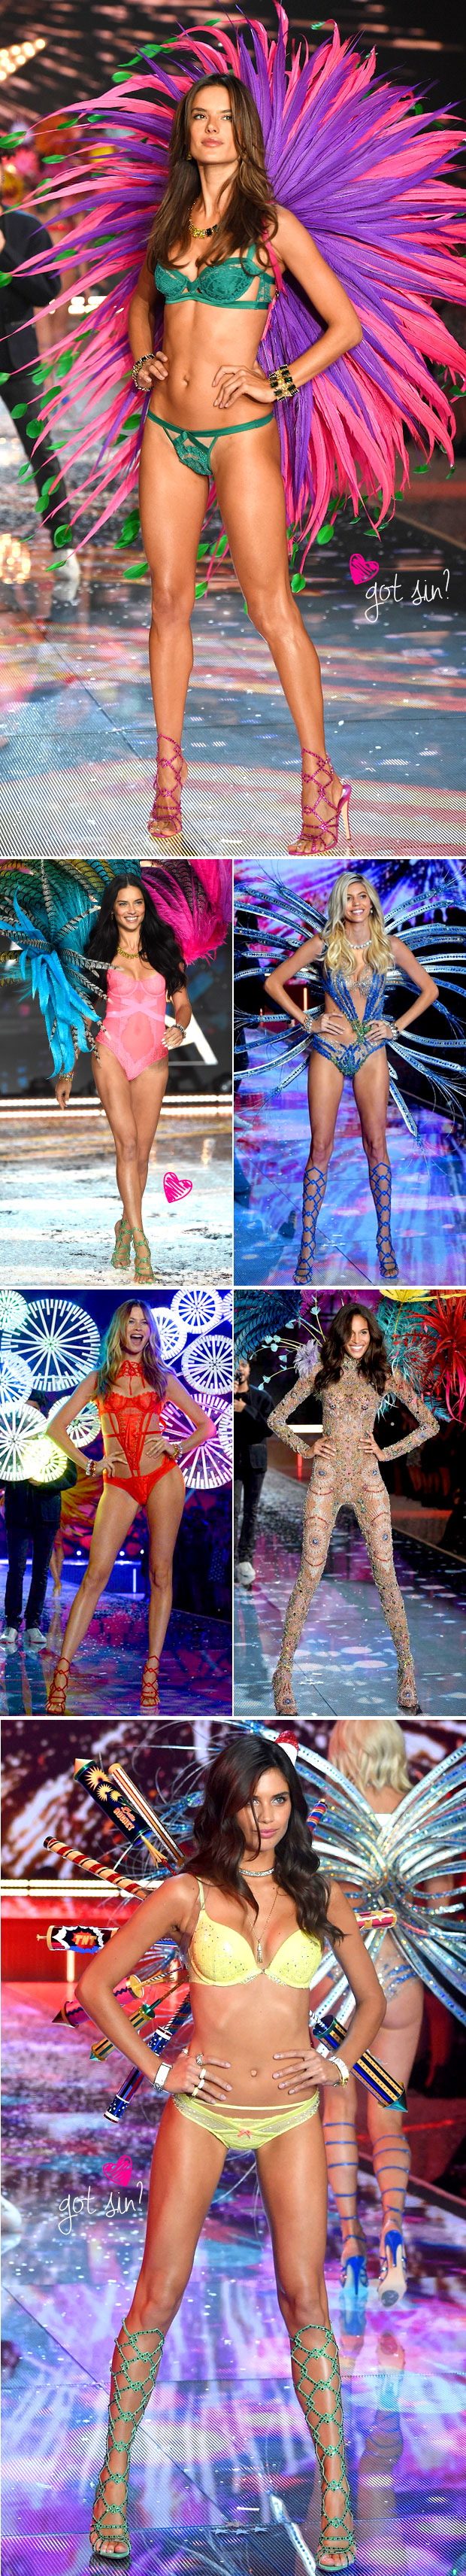 victorias-secret-fashion-show-todas-as-fotos-blog-got-sin-fireworks-alessandra-ambrosio-behati-prinsloo-sarah-sampaio